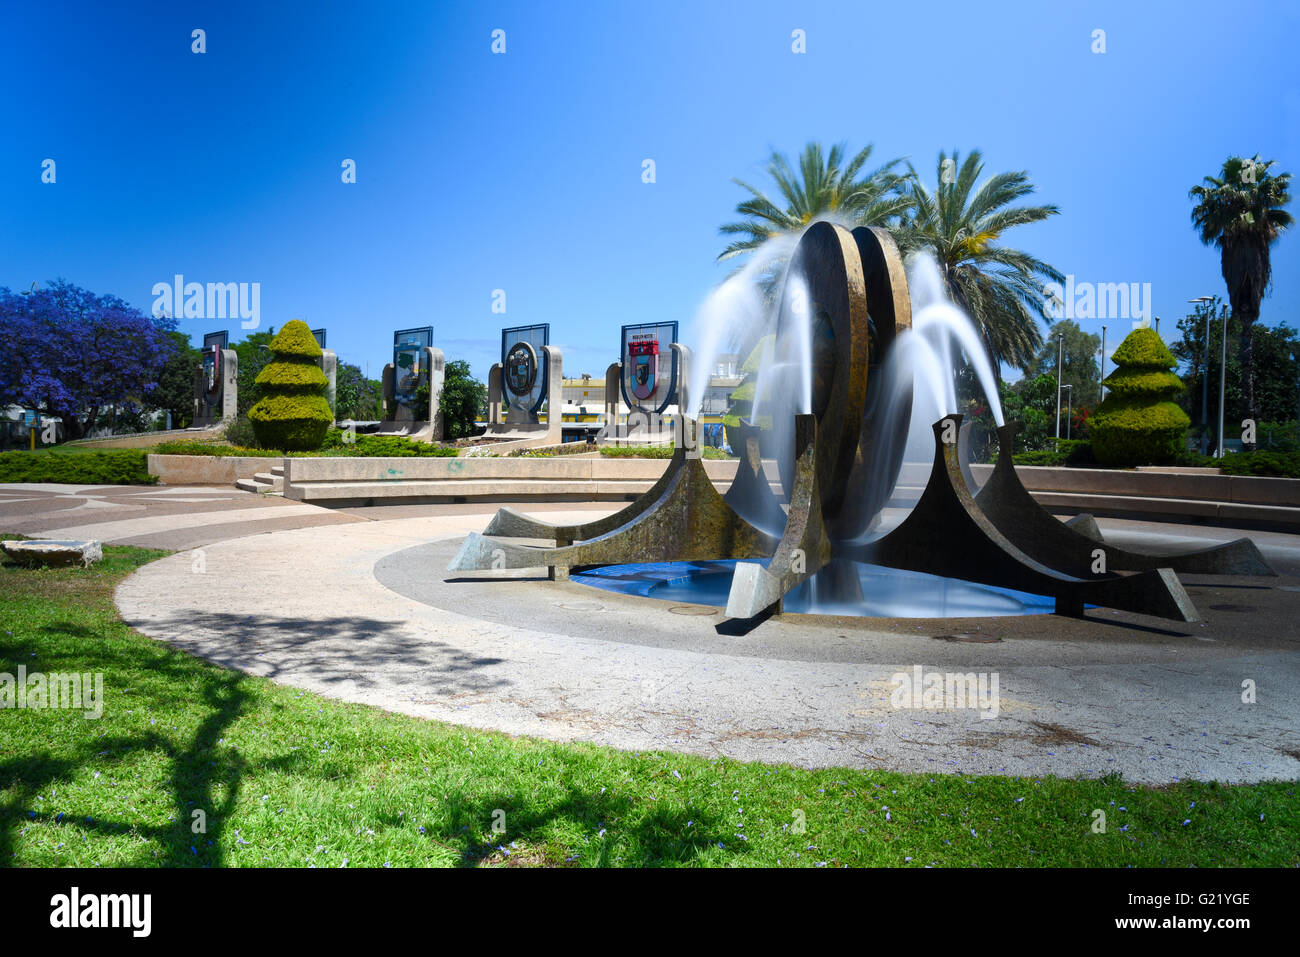 A fountain at twin towns park, Holon, Israel - Stock Image